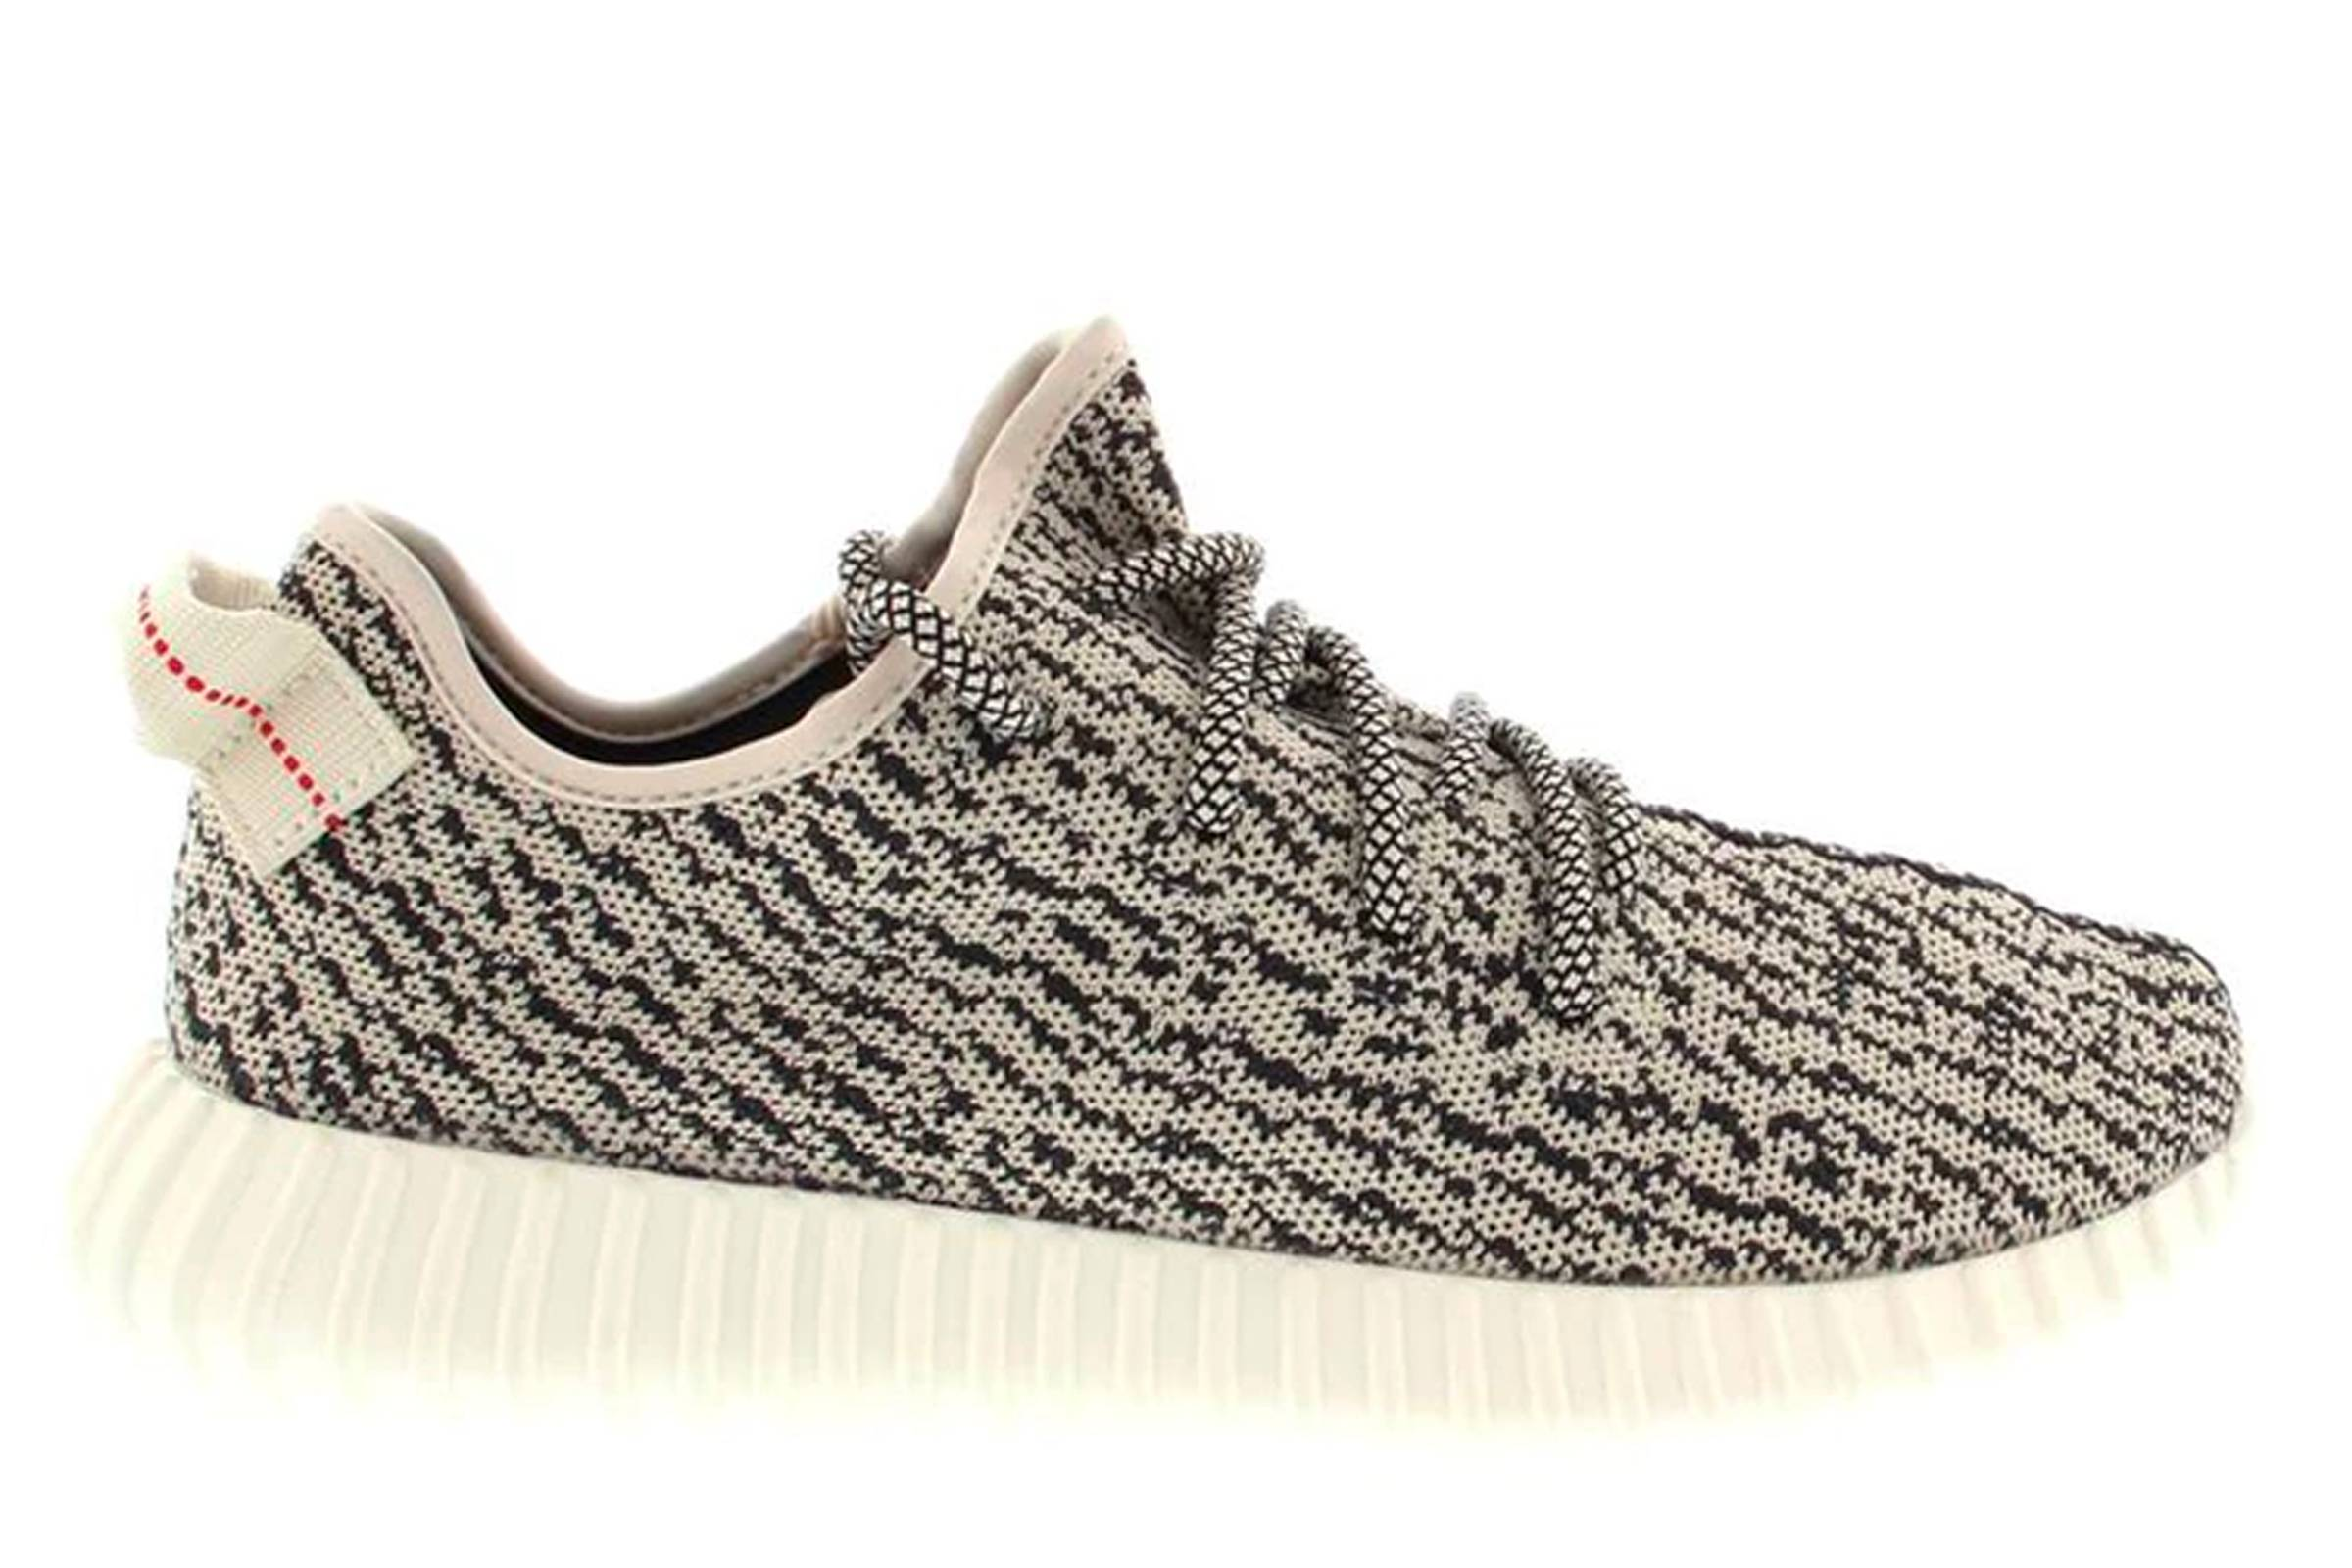 adidas Yeezy Boost Turtledove (2015) история adidas Boost